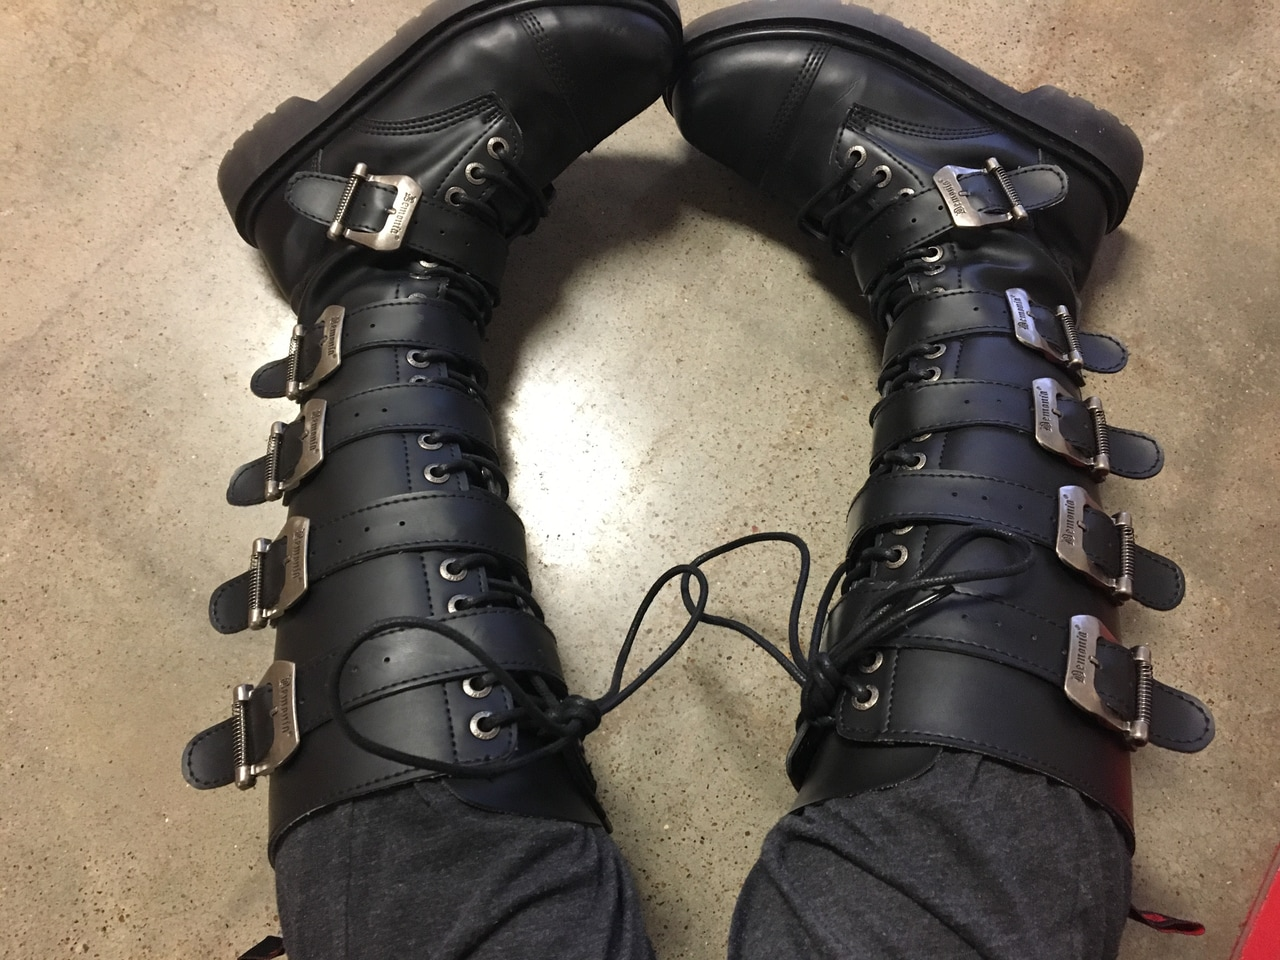 boots, knee high black boots, buckled boots and emo